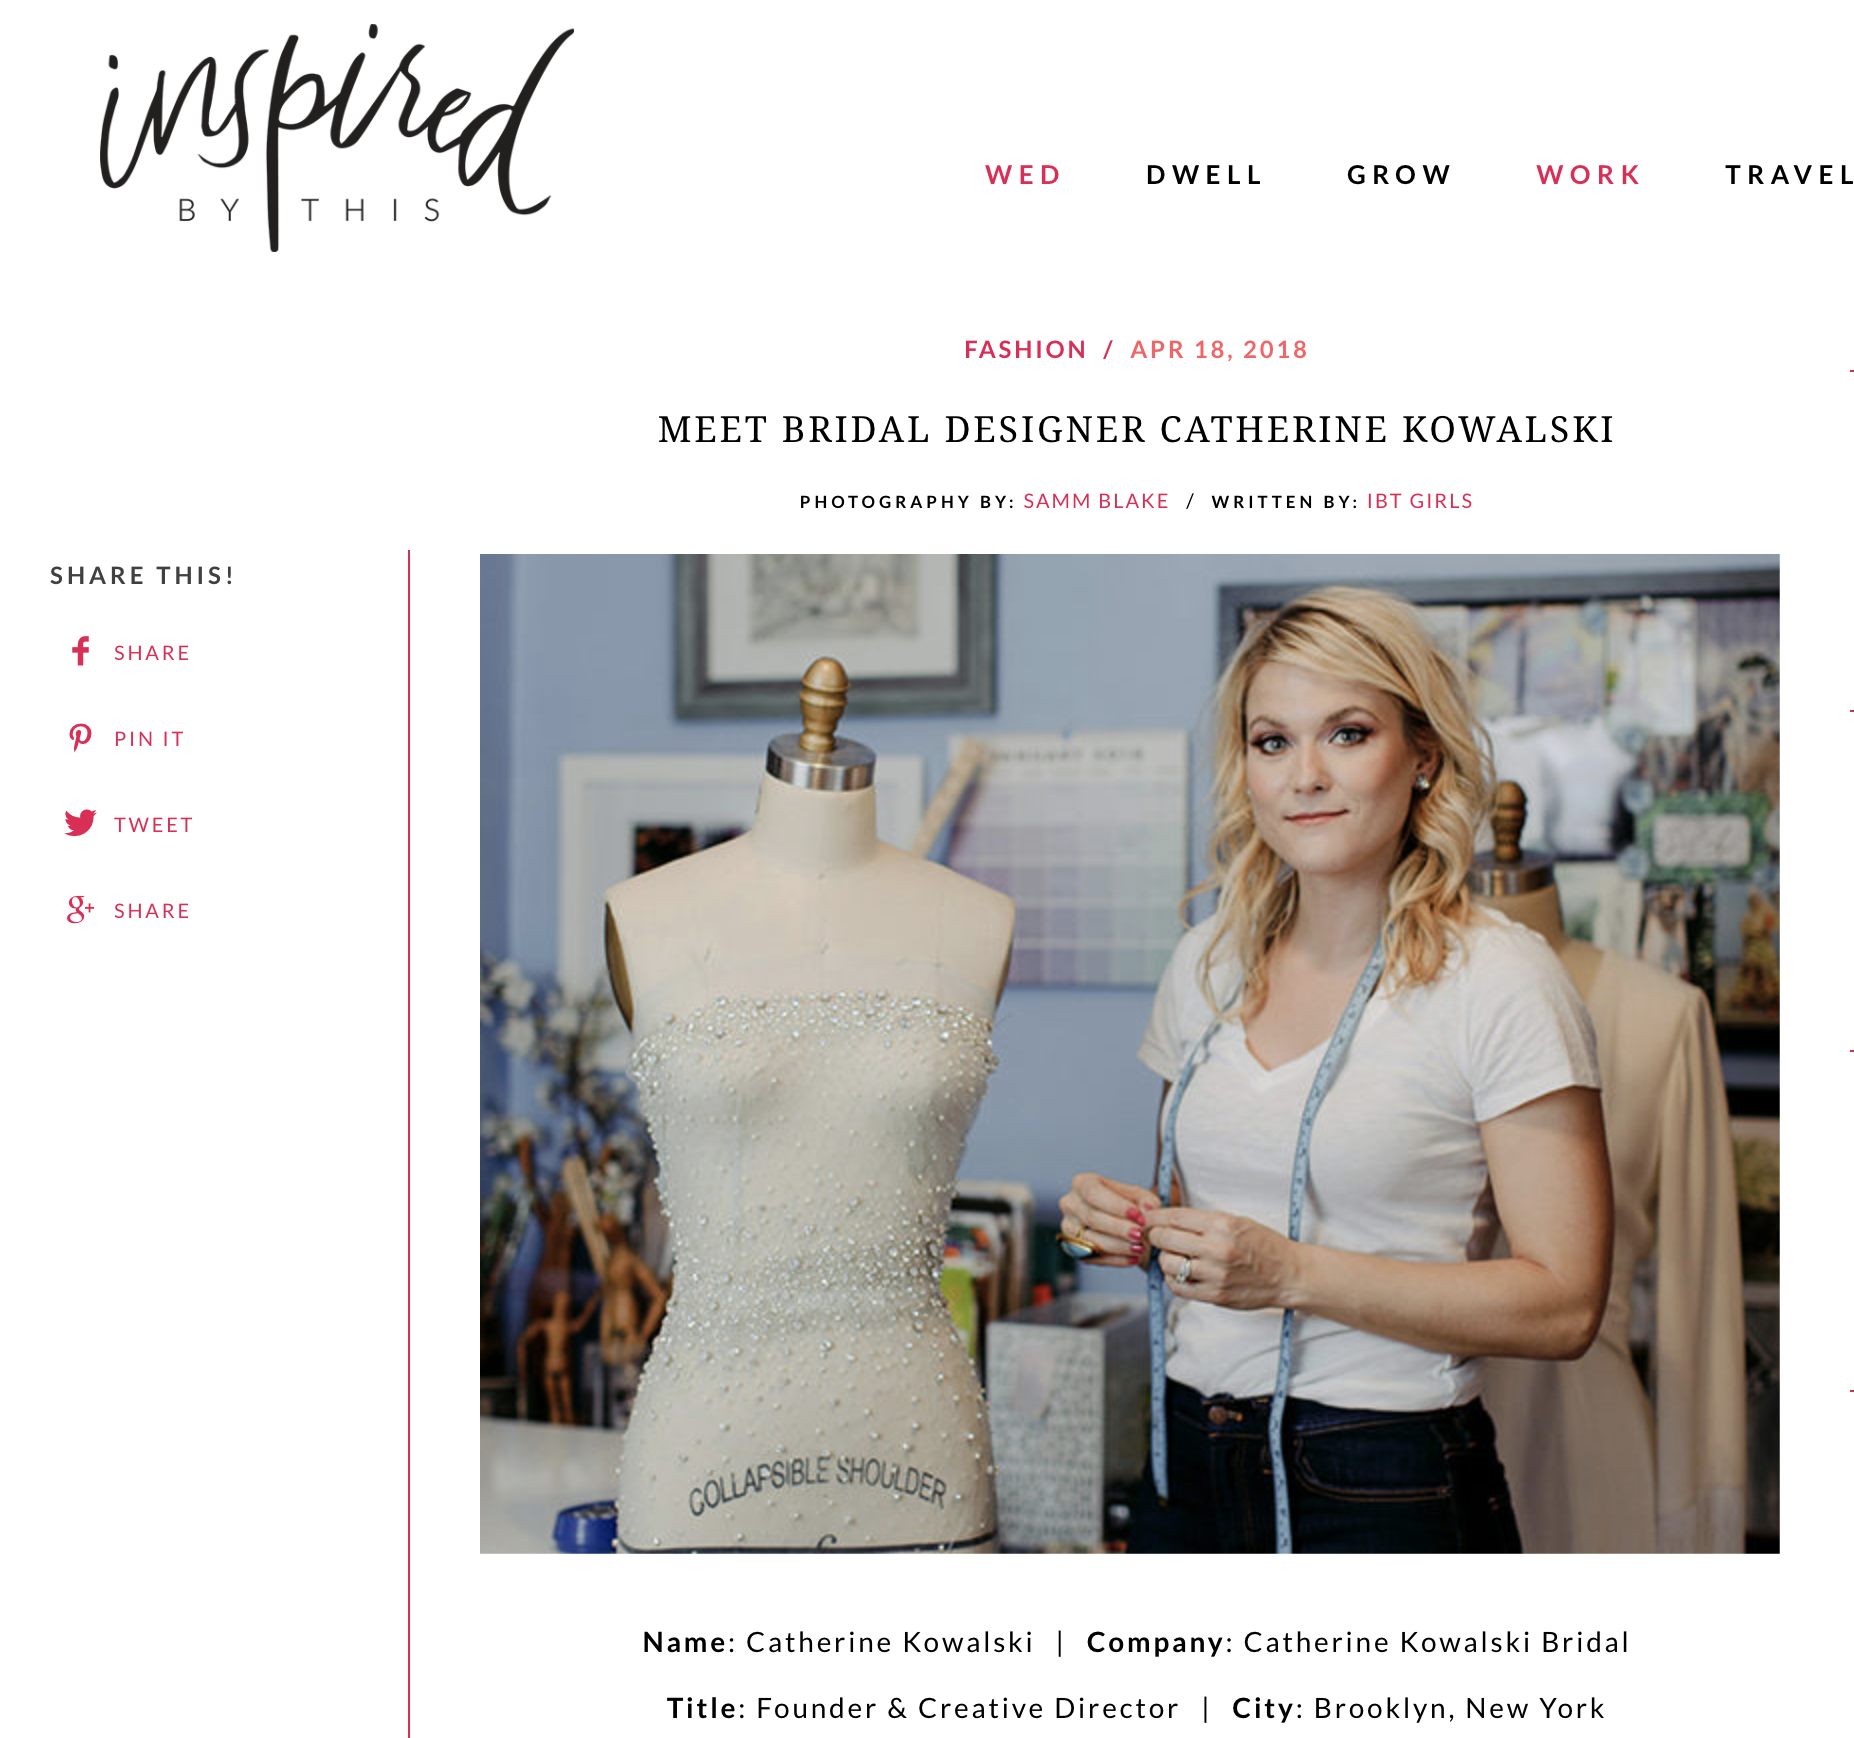 a66085e5b160a Inspired By This - Meet the Designer | ckbridal